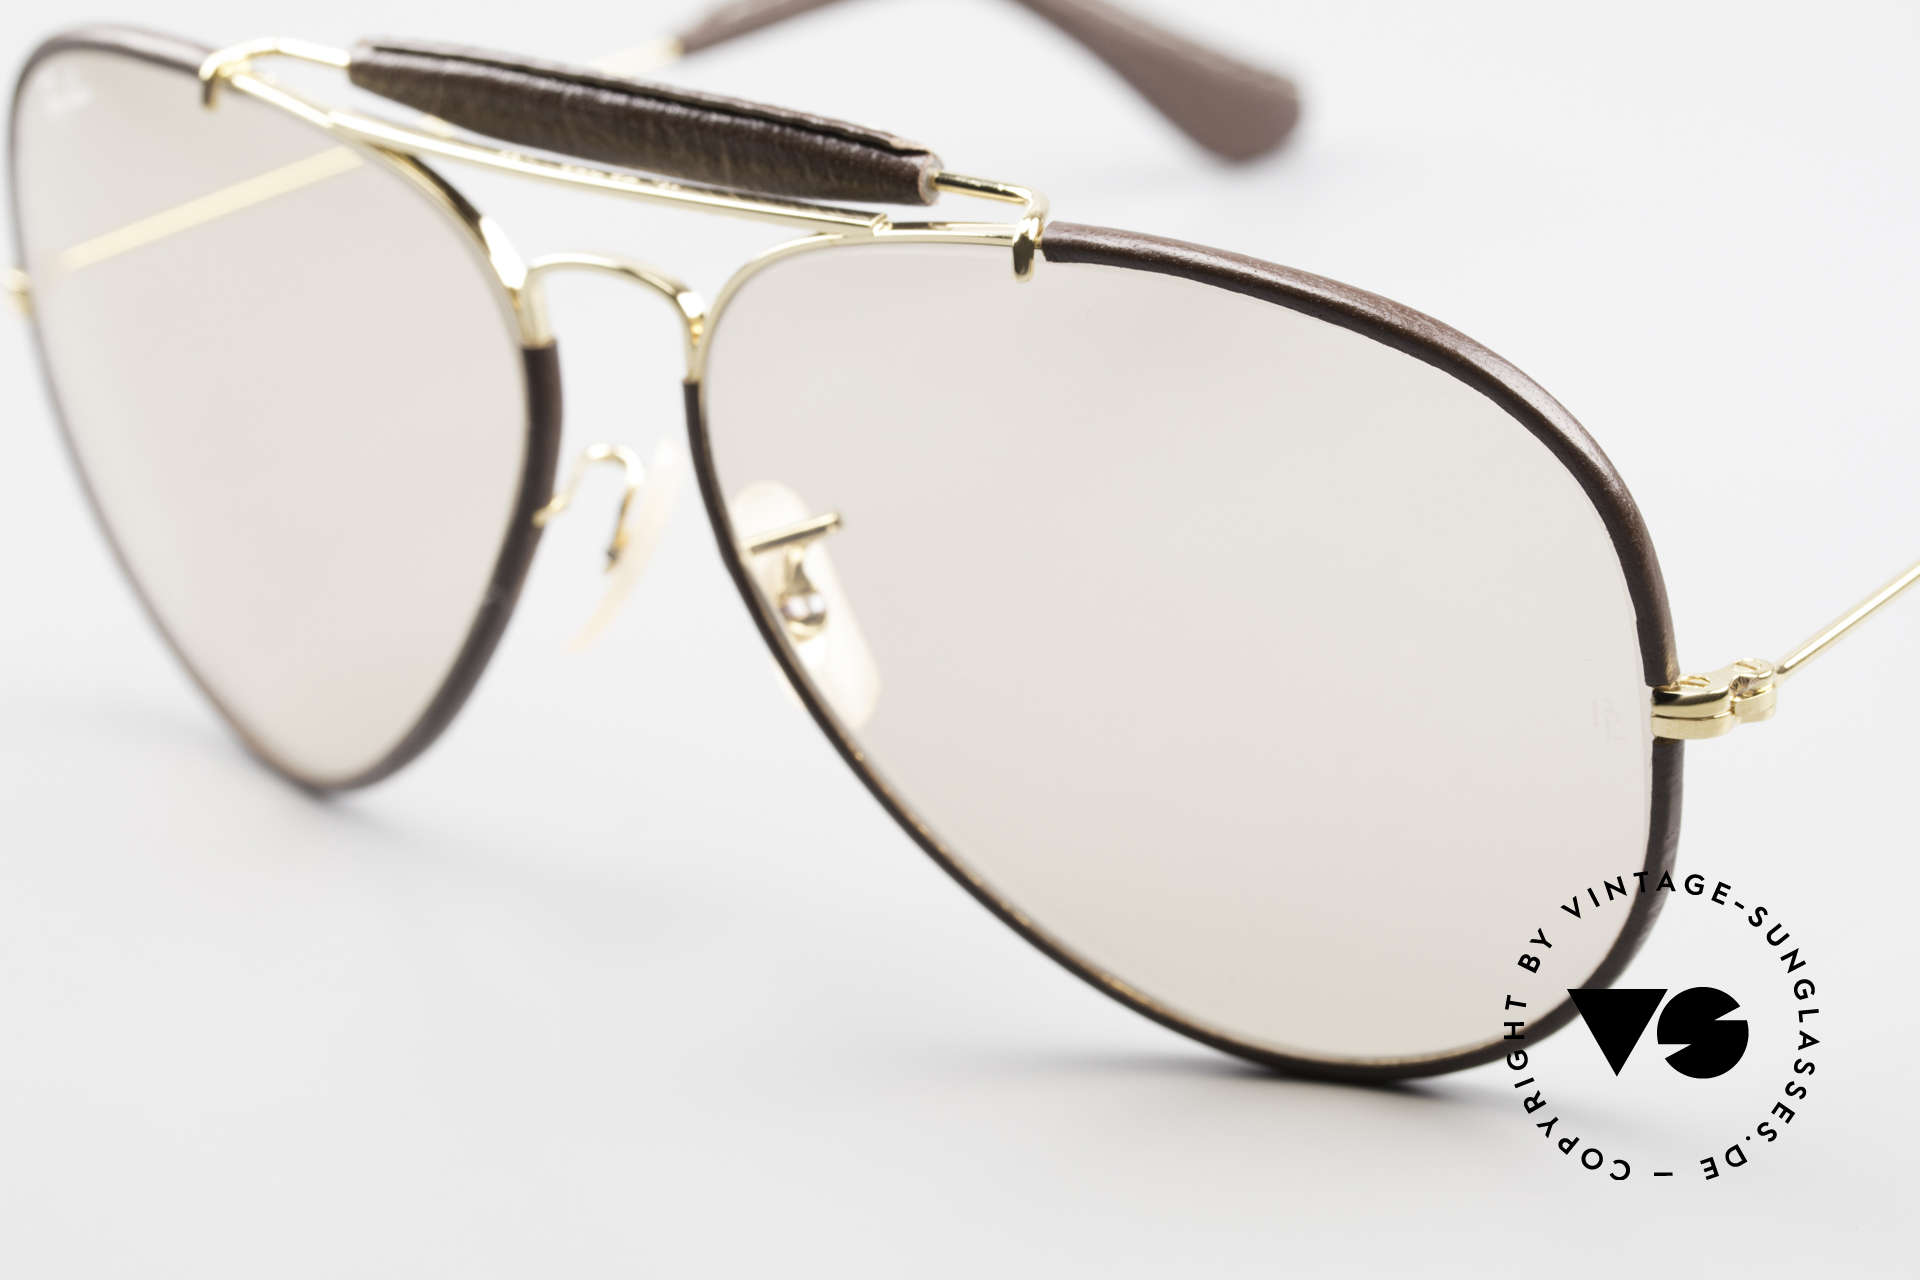 Ray Ban Outdoorsman II Changeable Leathers Shades, changeable lens: darker in the sun & lighter in the shade, Made for Men